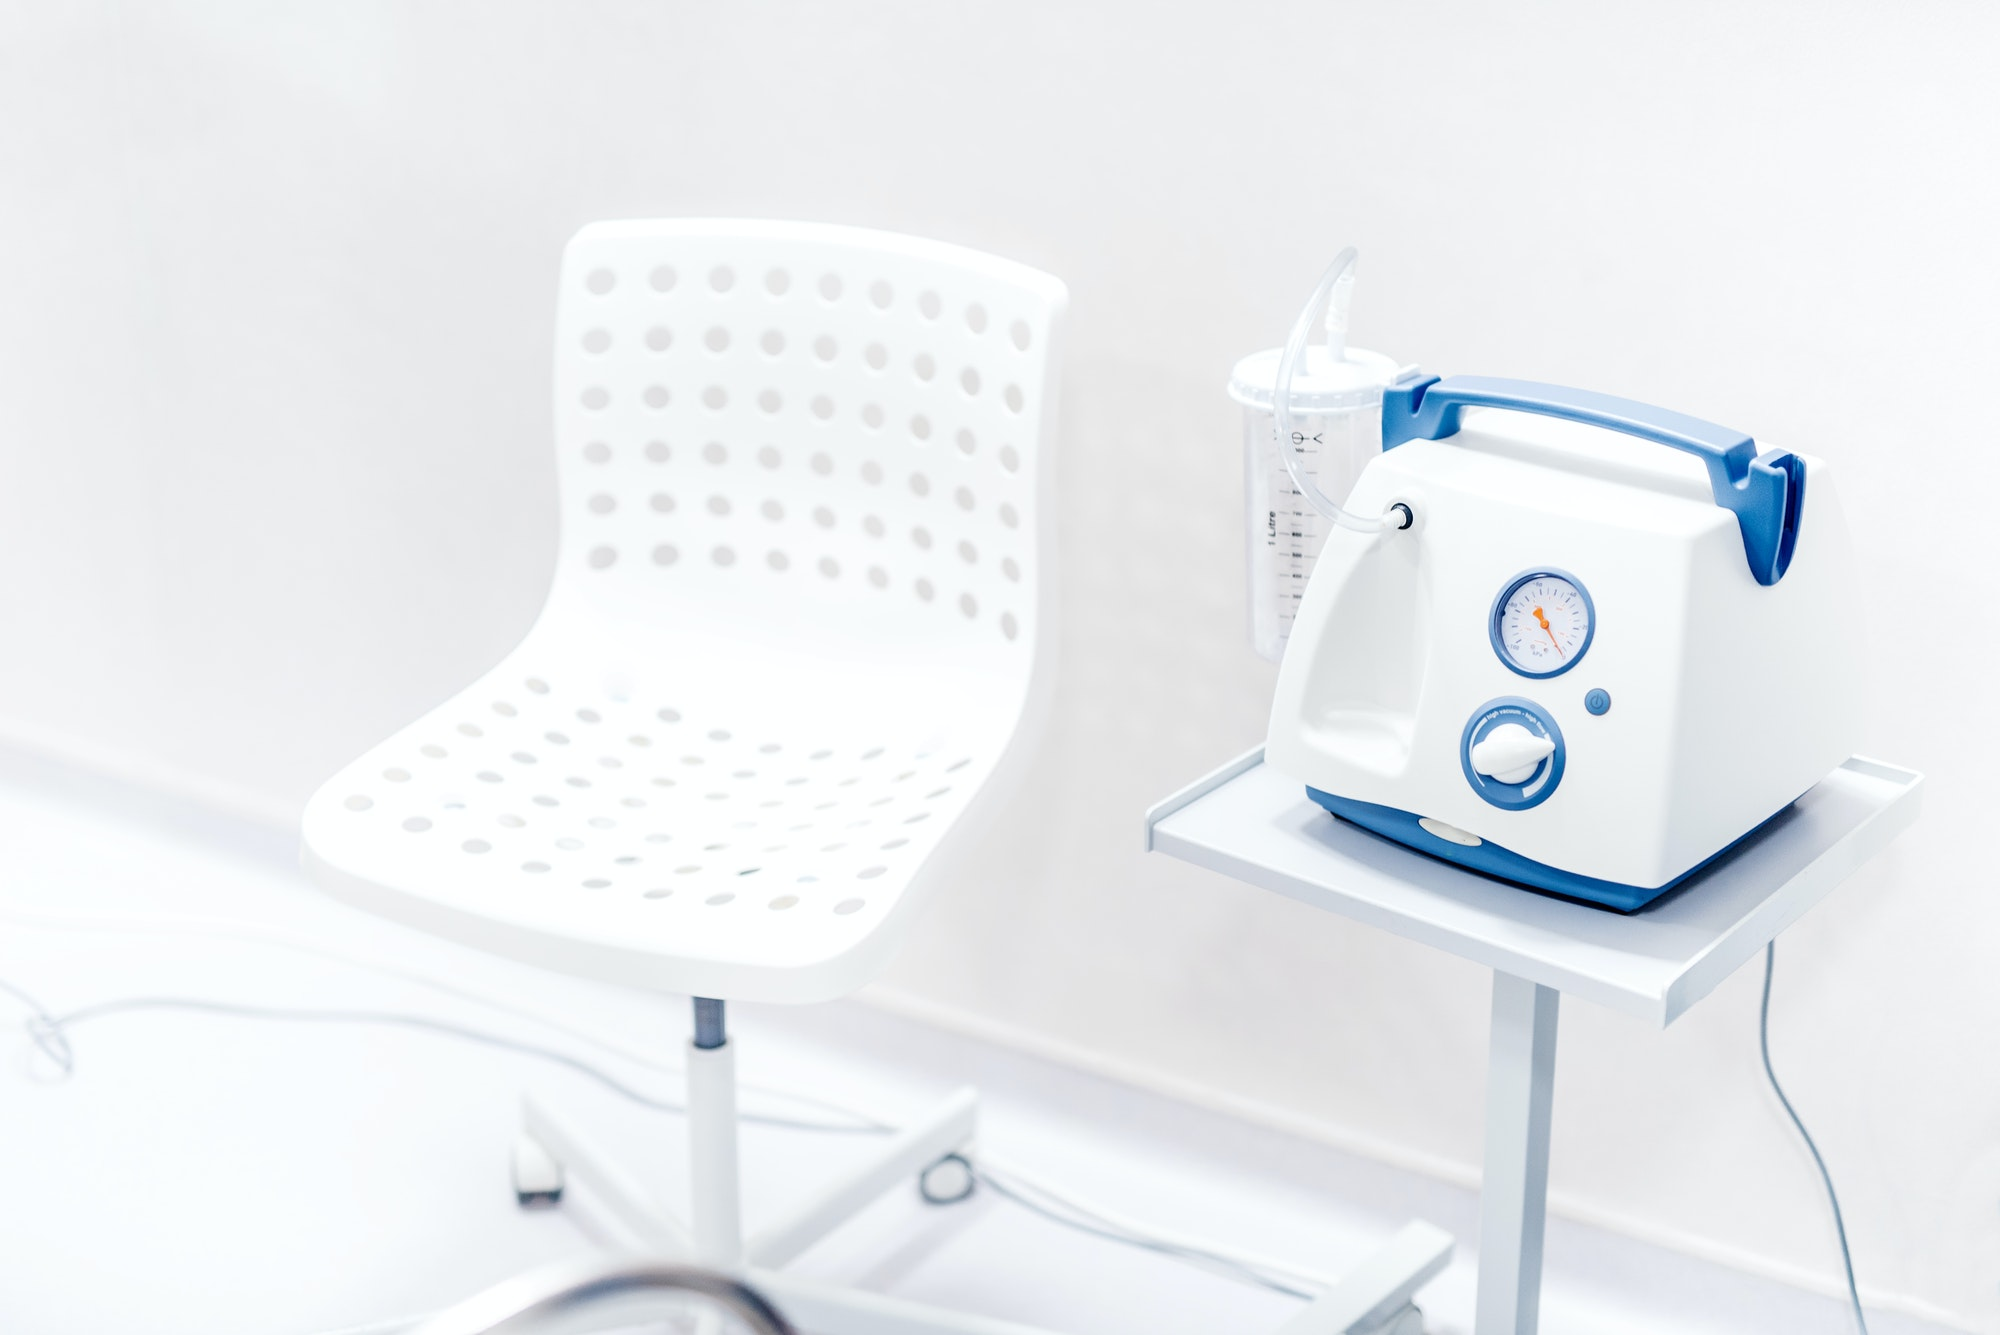 Chair and medical device in hospital room. Blood pressure and oxygen ventilation device